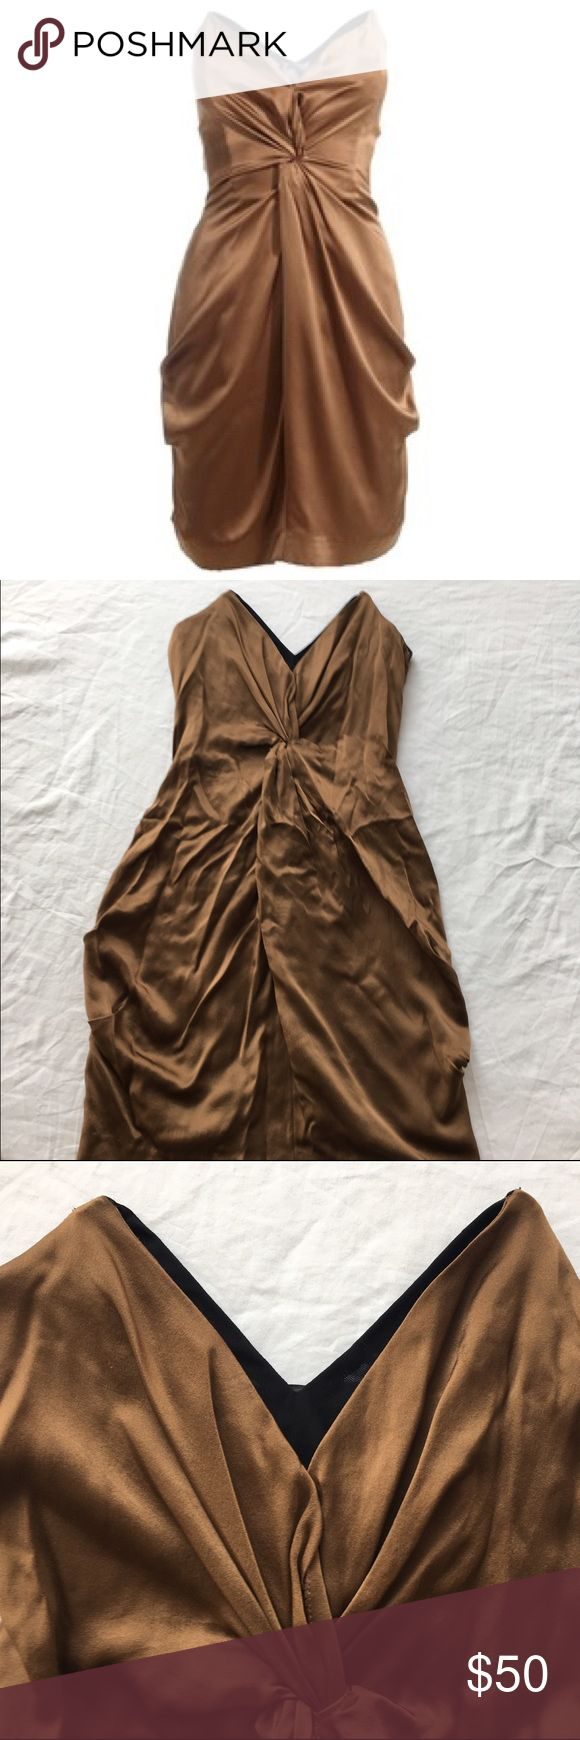 Reiss strapless bronze Courtney silk dress 2 xs Gorgeous silk dress from Reiss US 2/UK 6/XS. Perfect condition - photos are a little wrinkled looking from storage but nothing a good steam won't correct :) Reiss Dresses Strapless